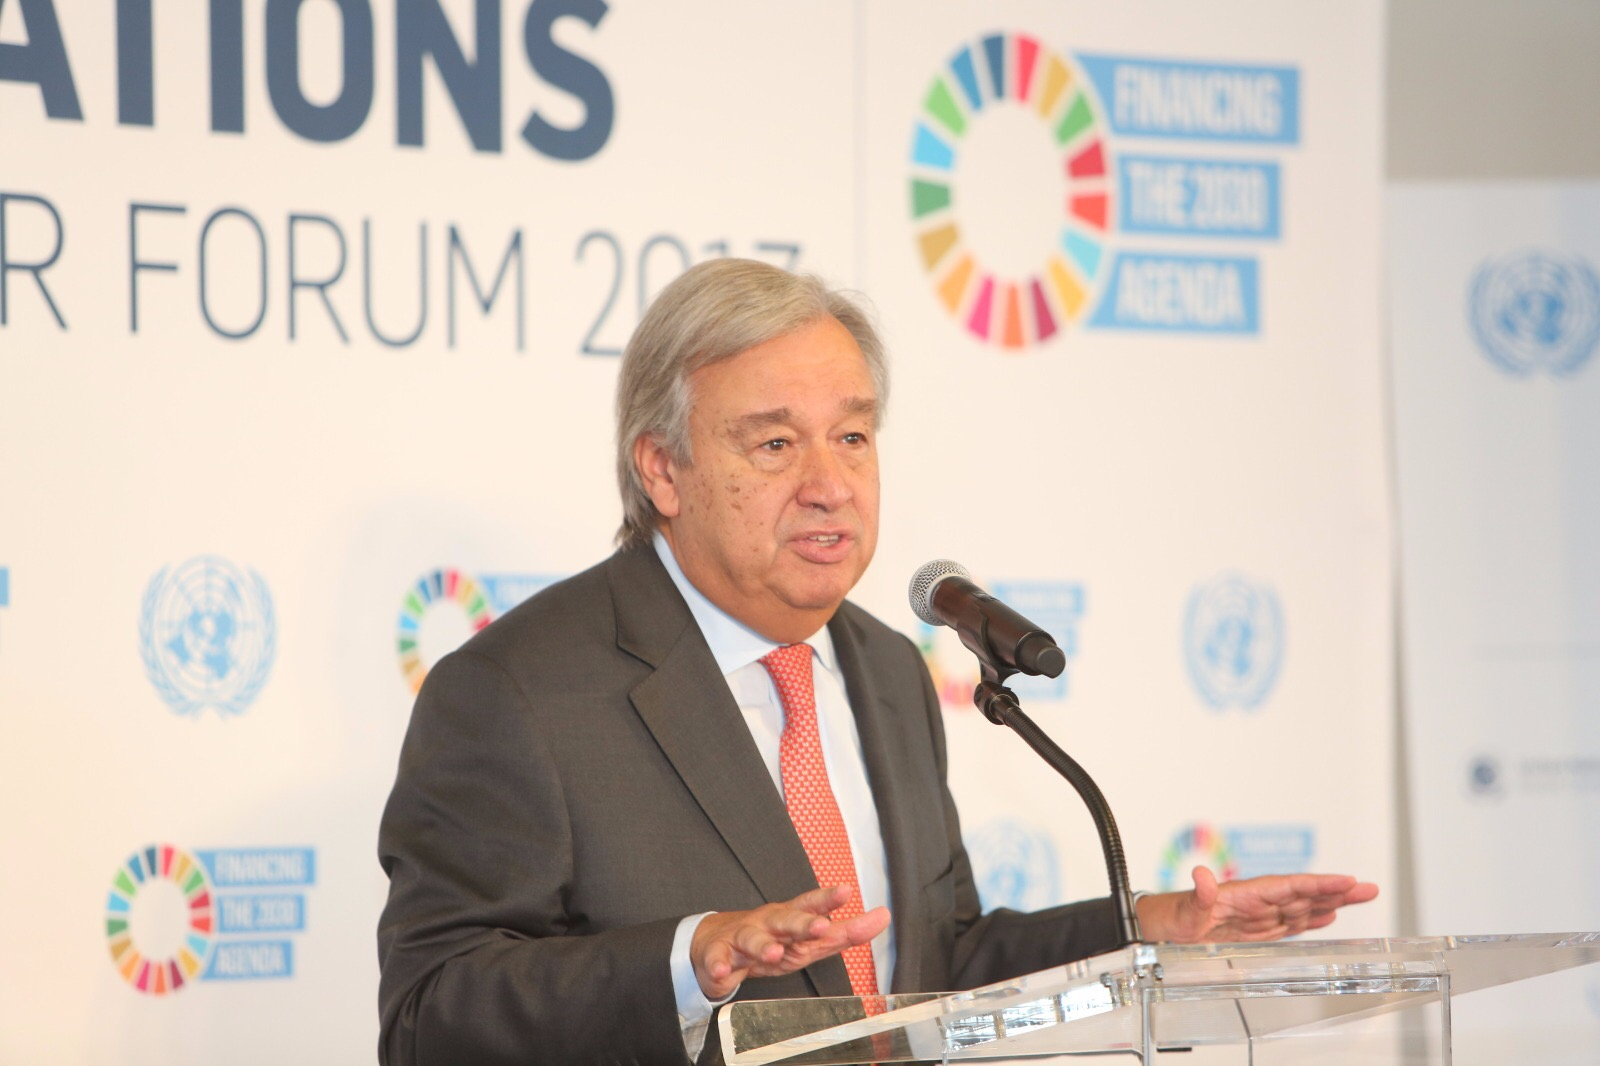 UN Secretary-General and Global CEOs Accelerate Shift to Sustainable Finance